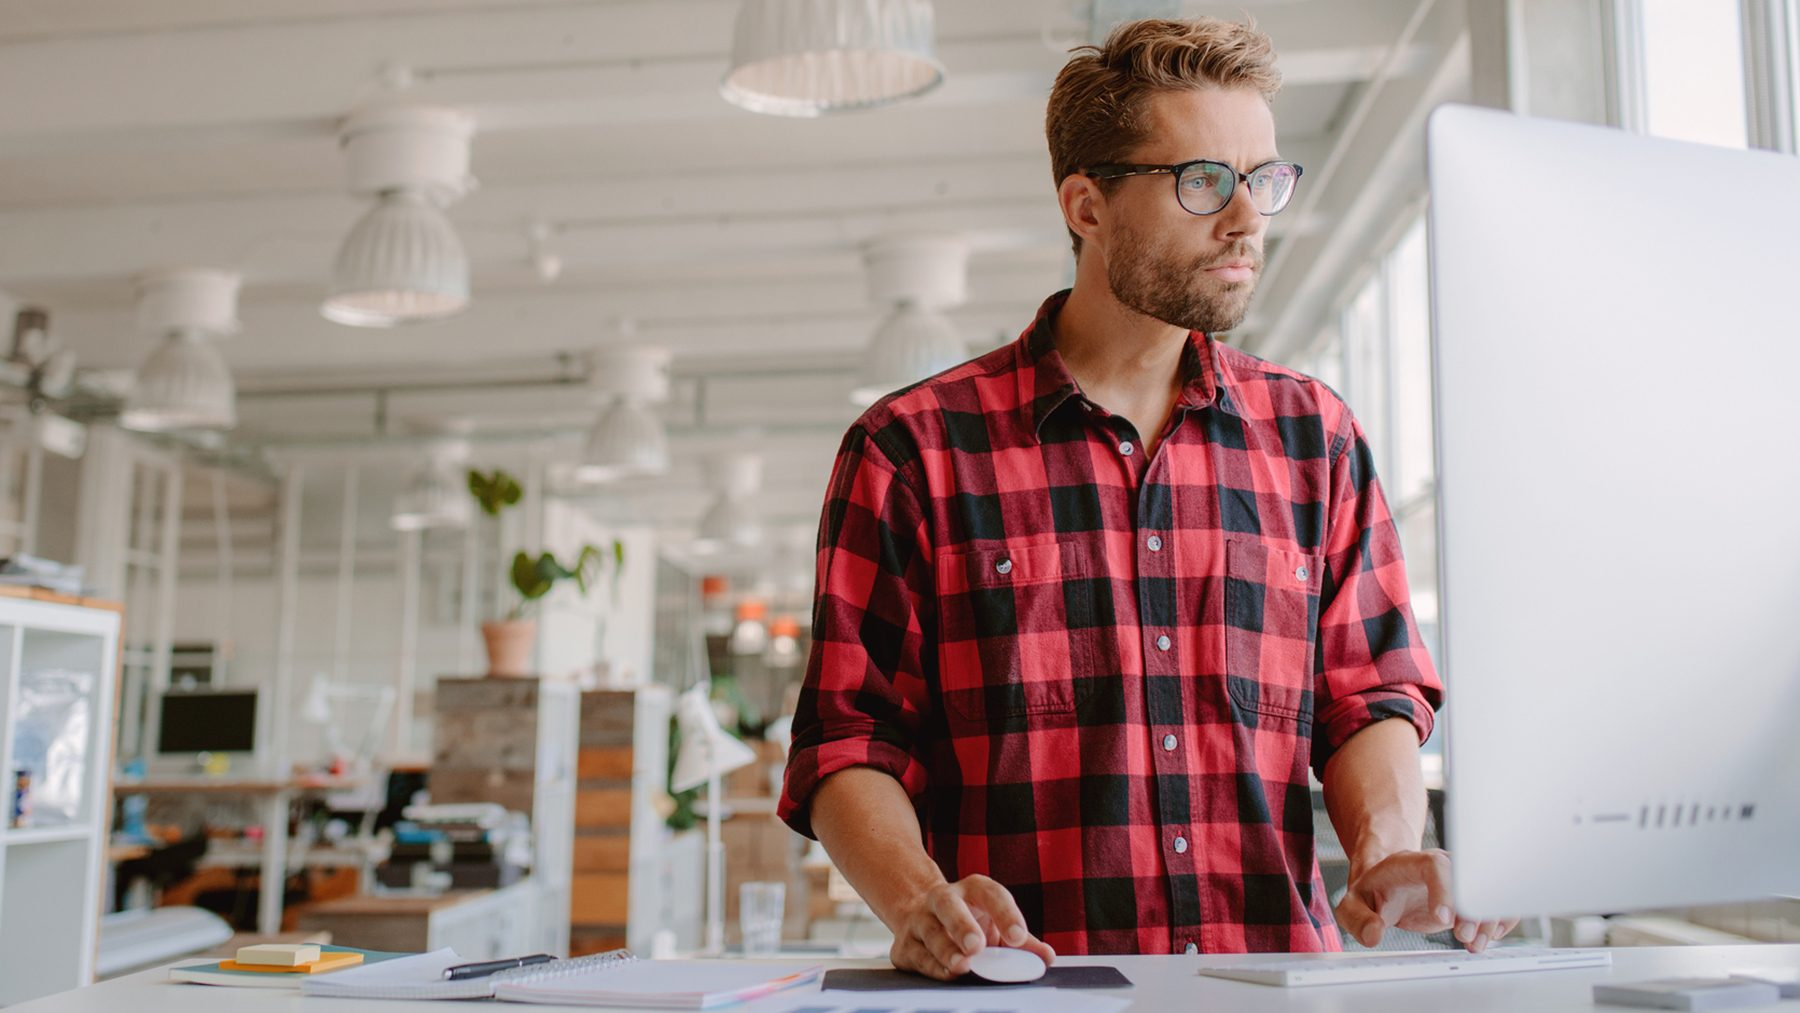 young-man-working-on-computer-in-modern-workplace